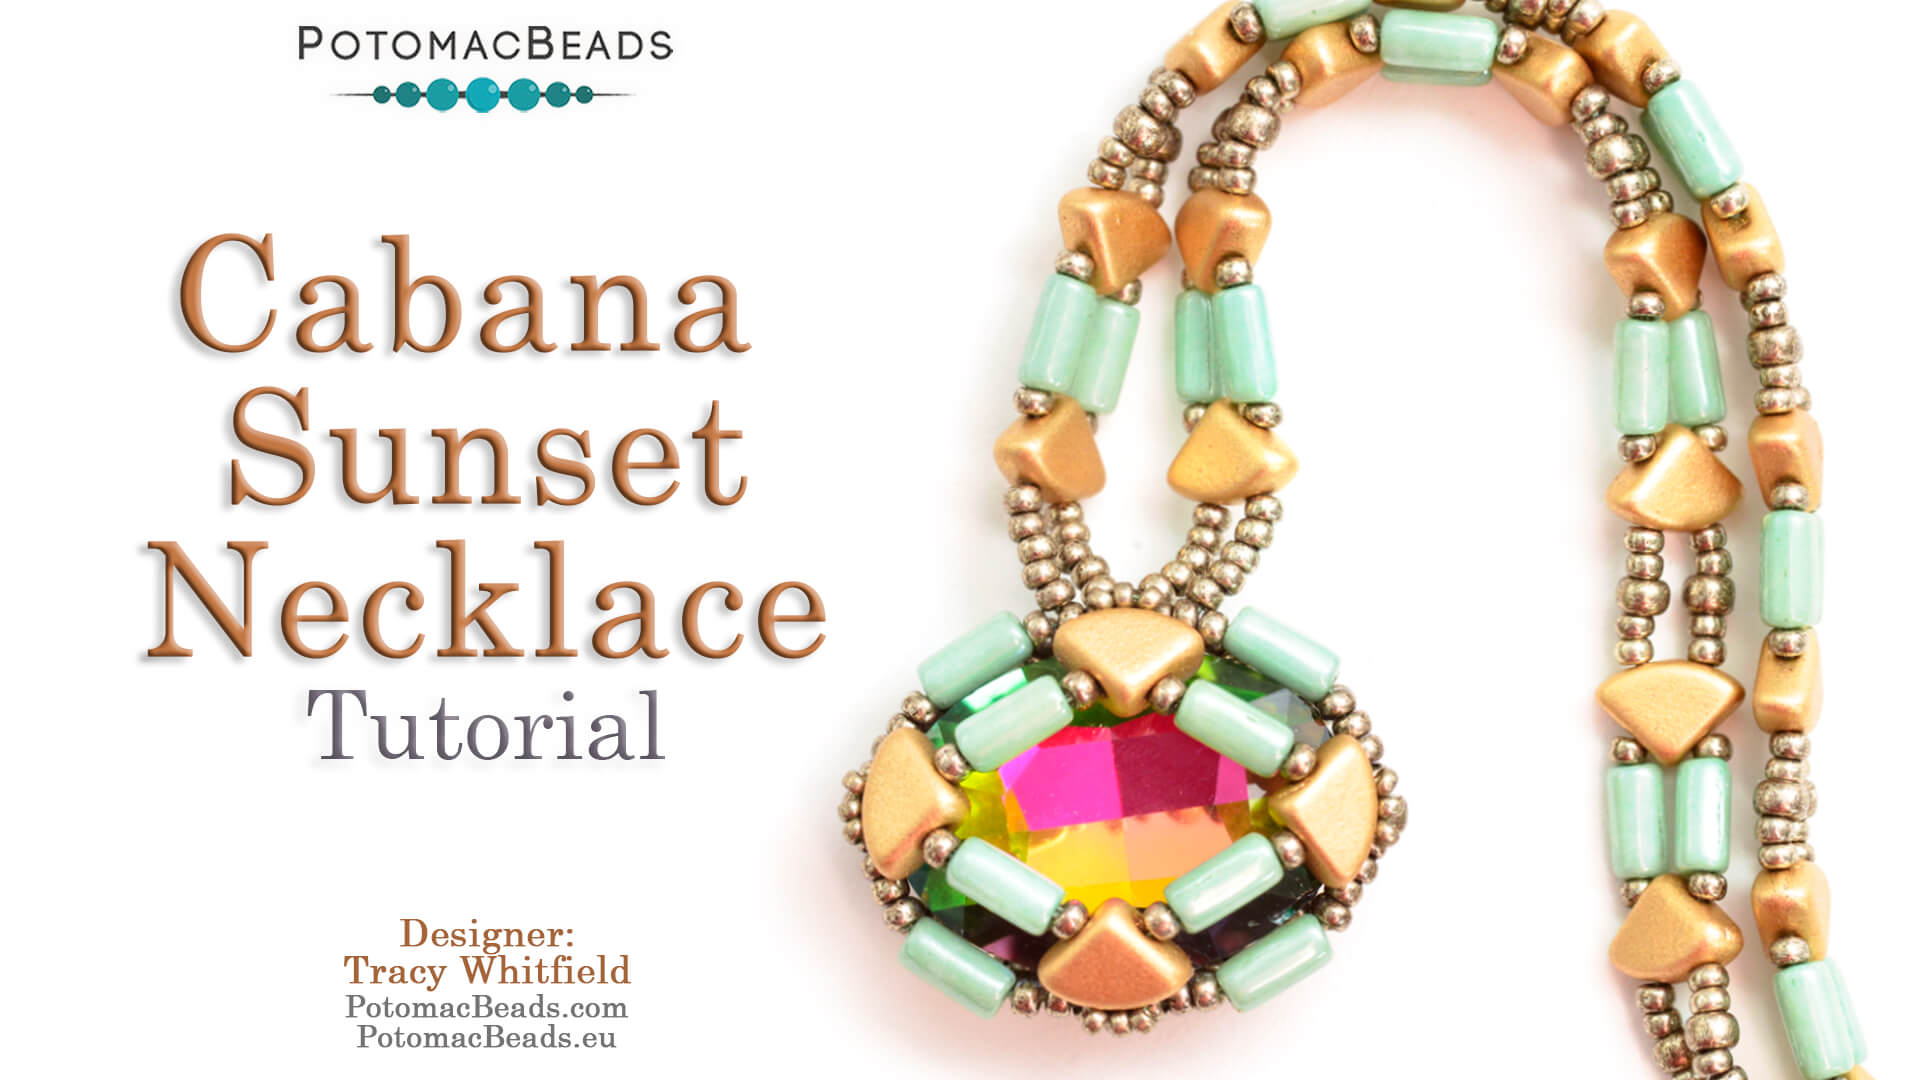 How to Bead Jewelry / Videos Sorted by Beads / Tubelet Bead Videos / Cabana Sunset Necklace Tutorial